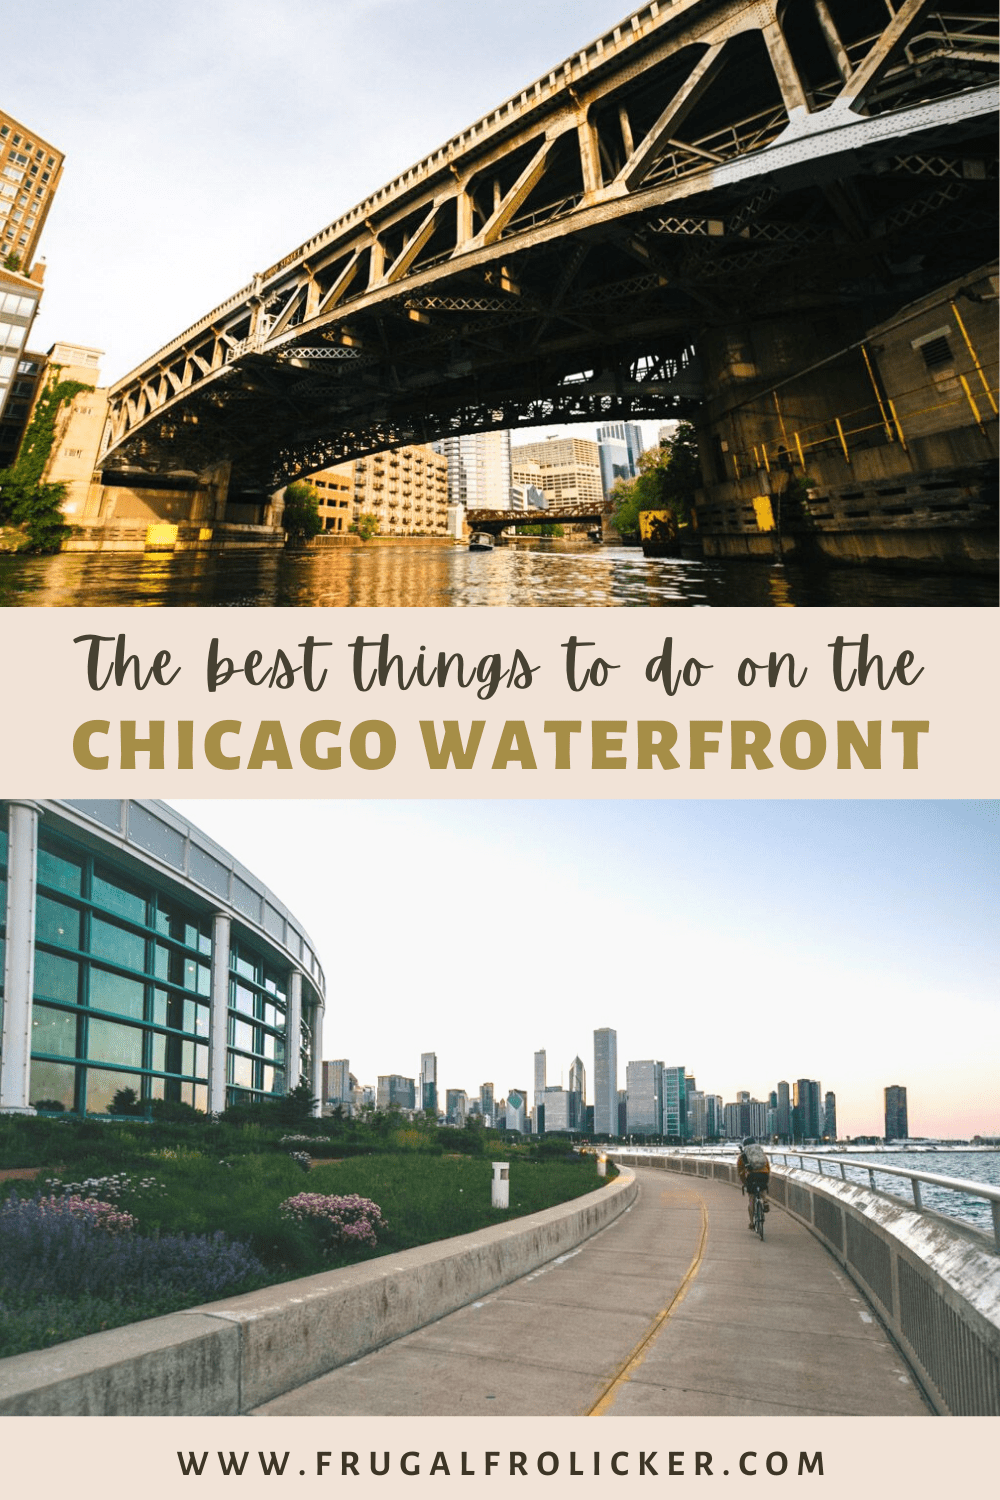 The Best Things To Do On The Chicago Waterfront